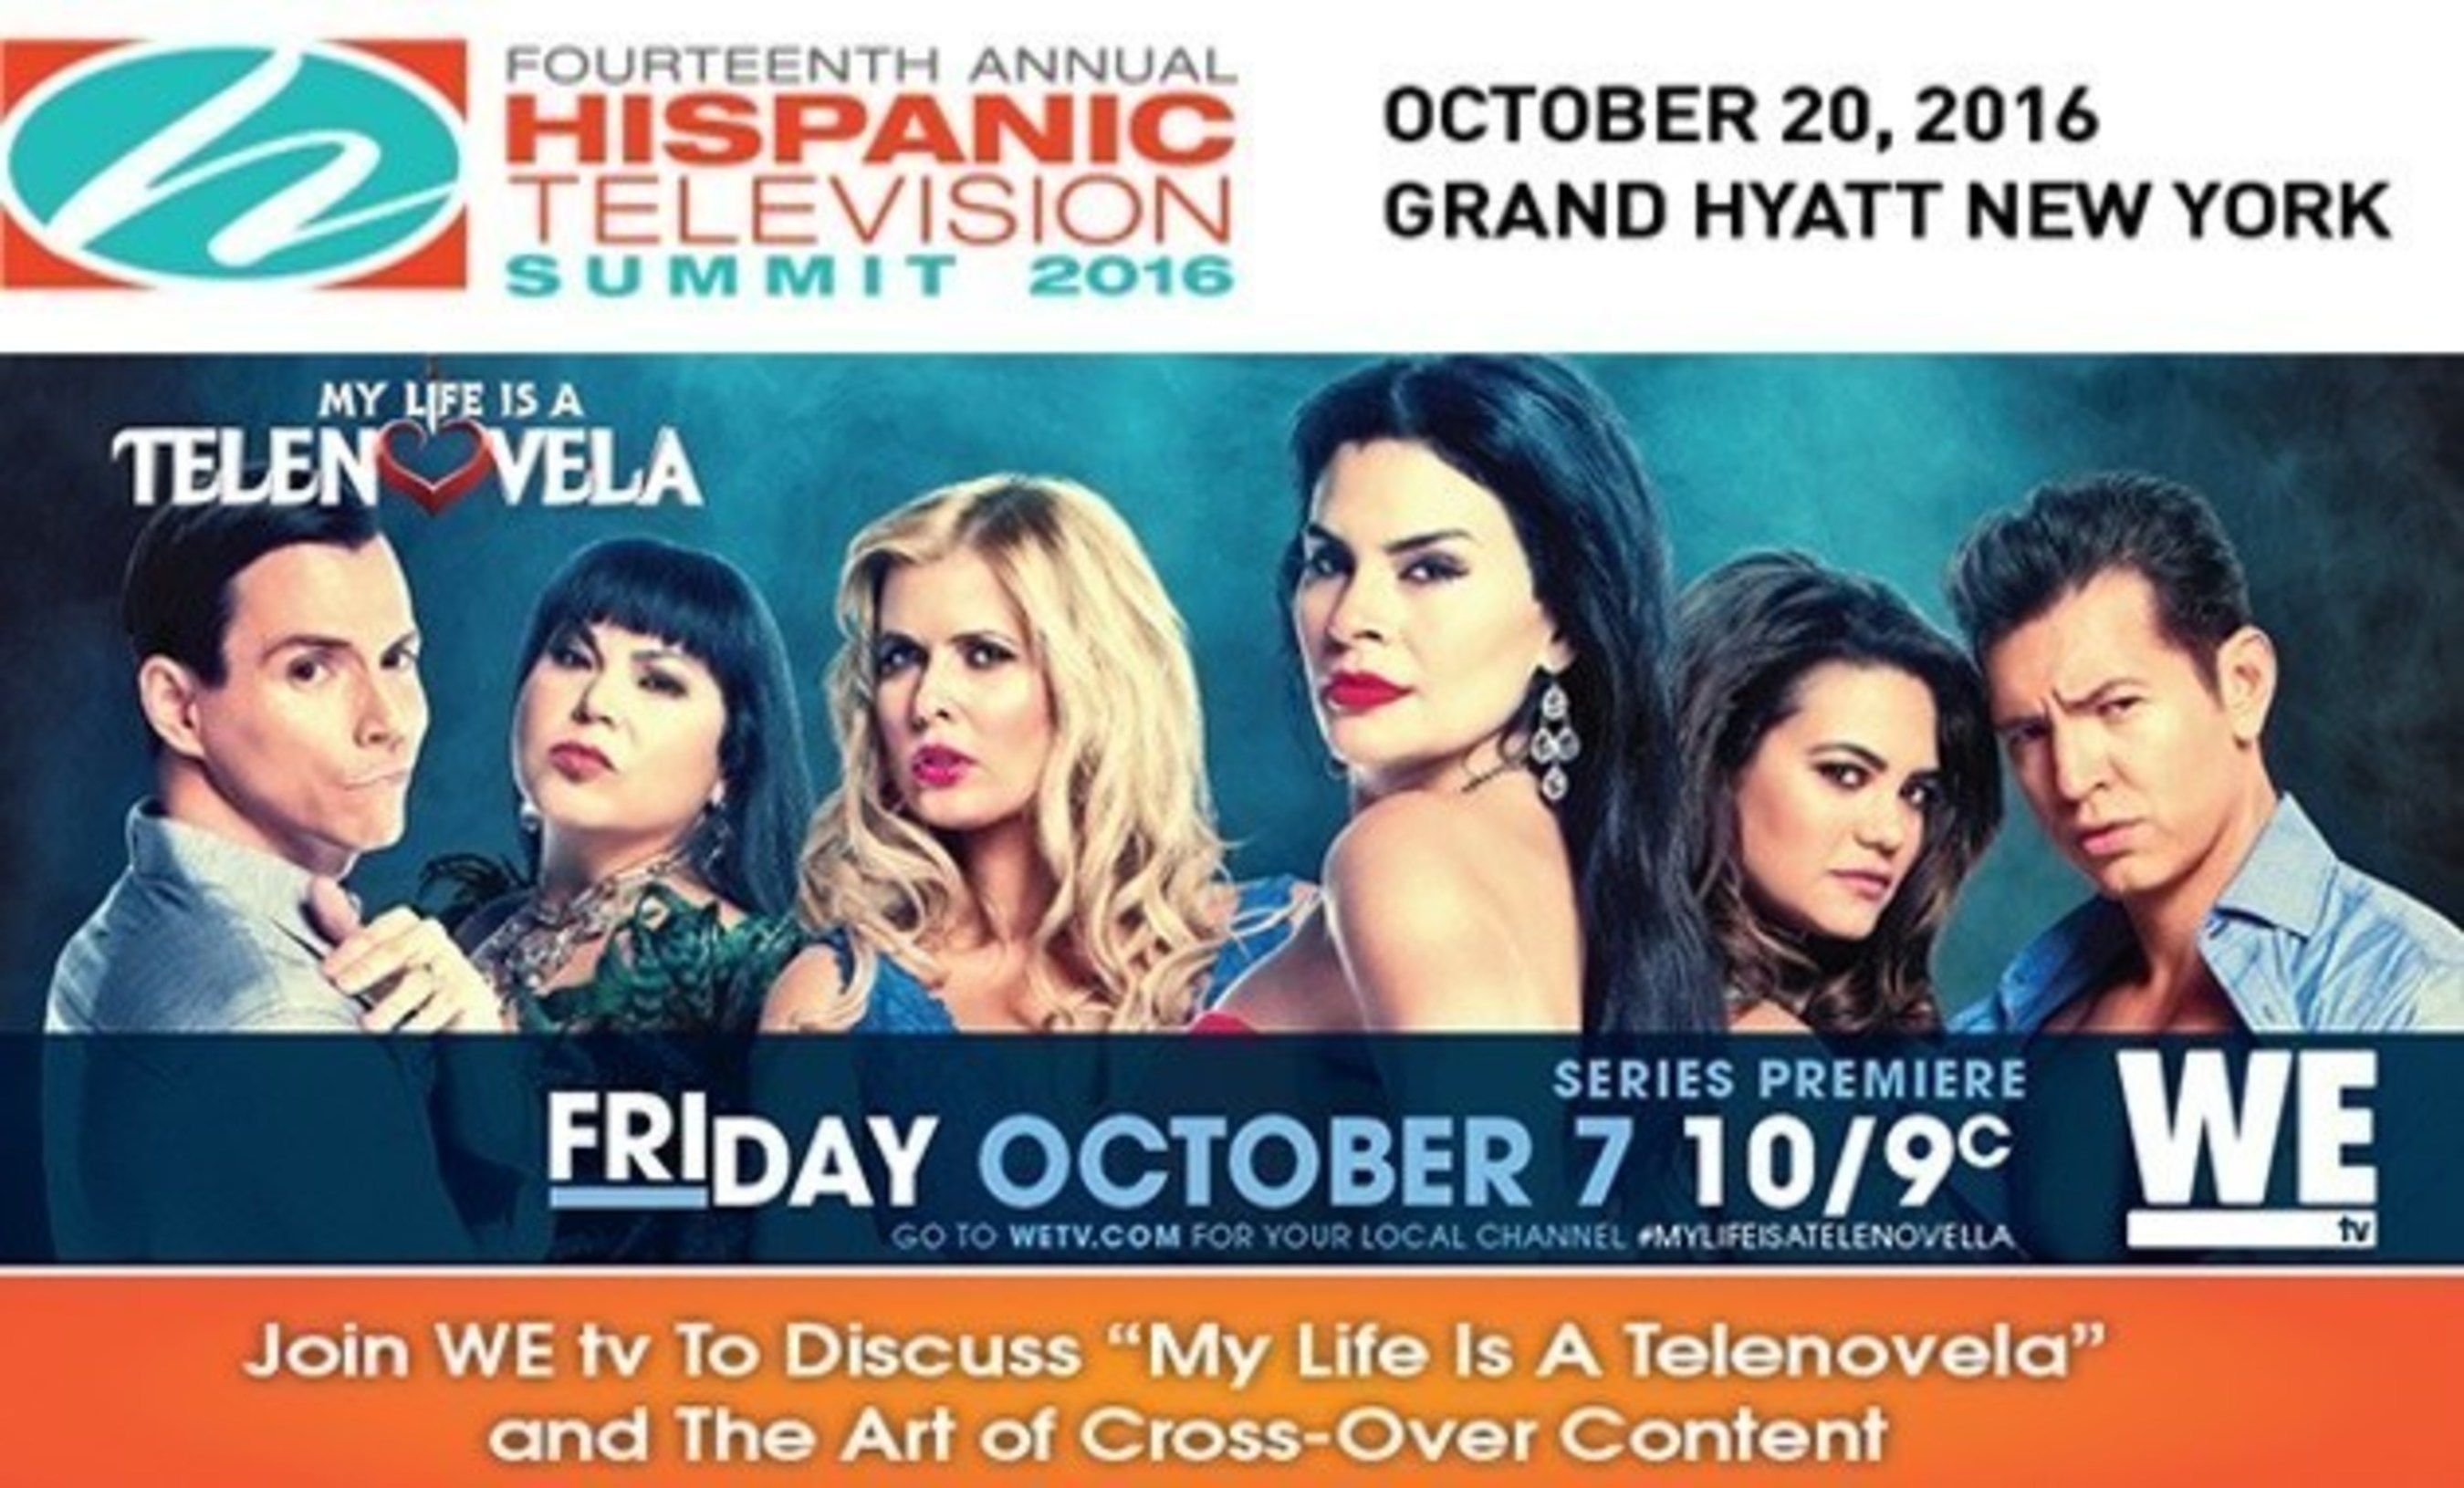 Stars from My Life is a Telenovela featured in a celebrity panel about cross-over content with WE tv President during 14th Annual Hispanic Television Summit